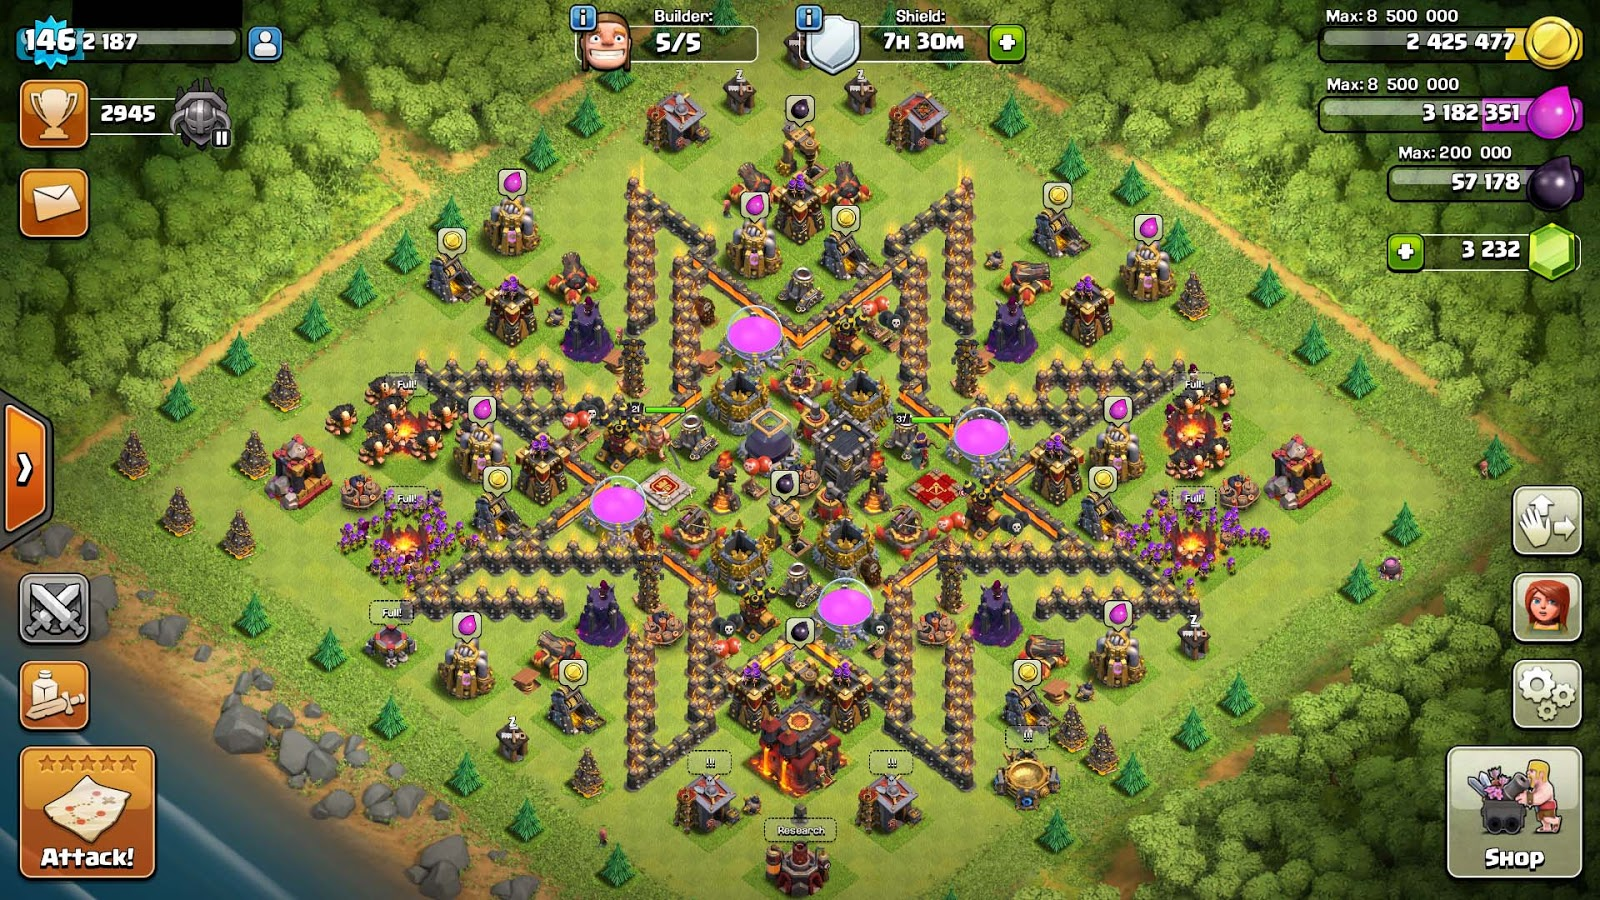 143 Clash Of Clans Coc Th 10 Max Name Change Archer Tower Lv 13